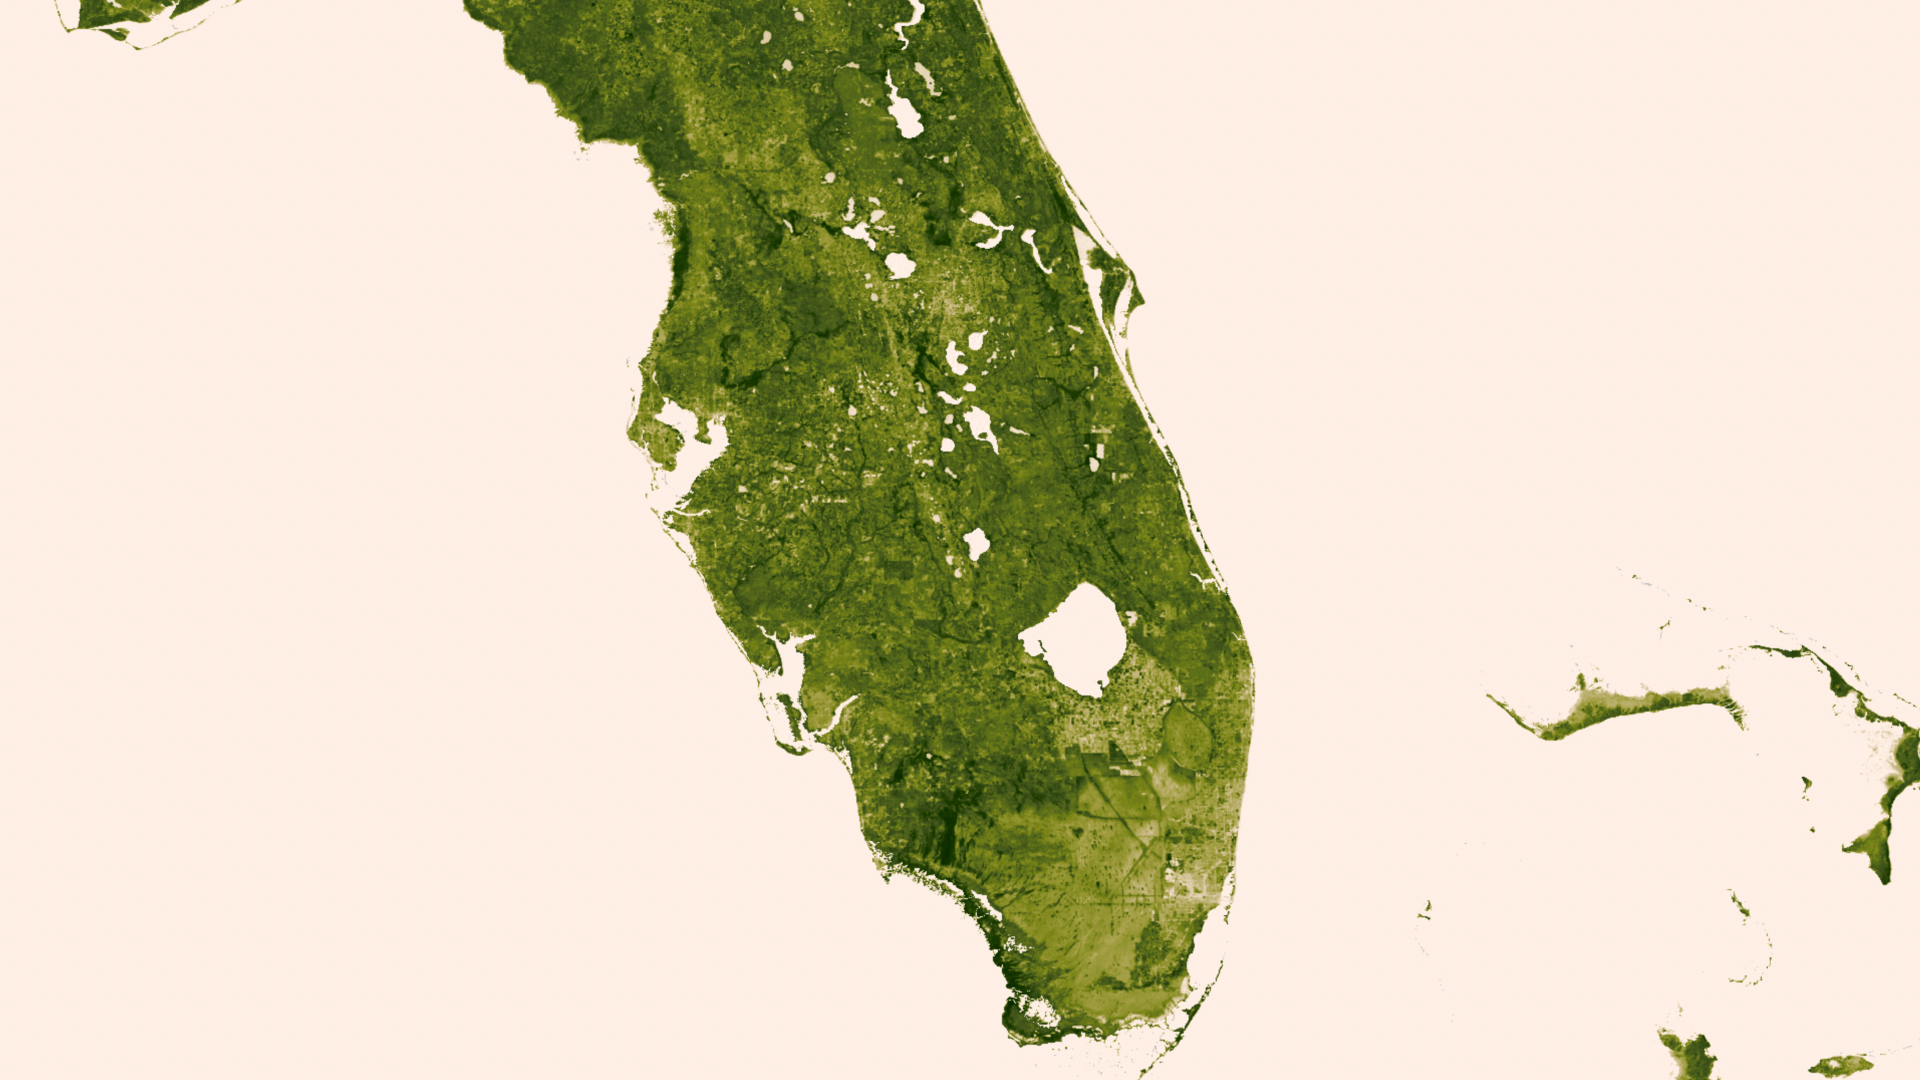 The Florida everglades in their green glory.